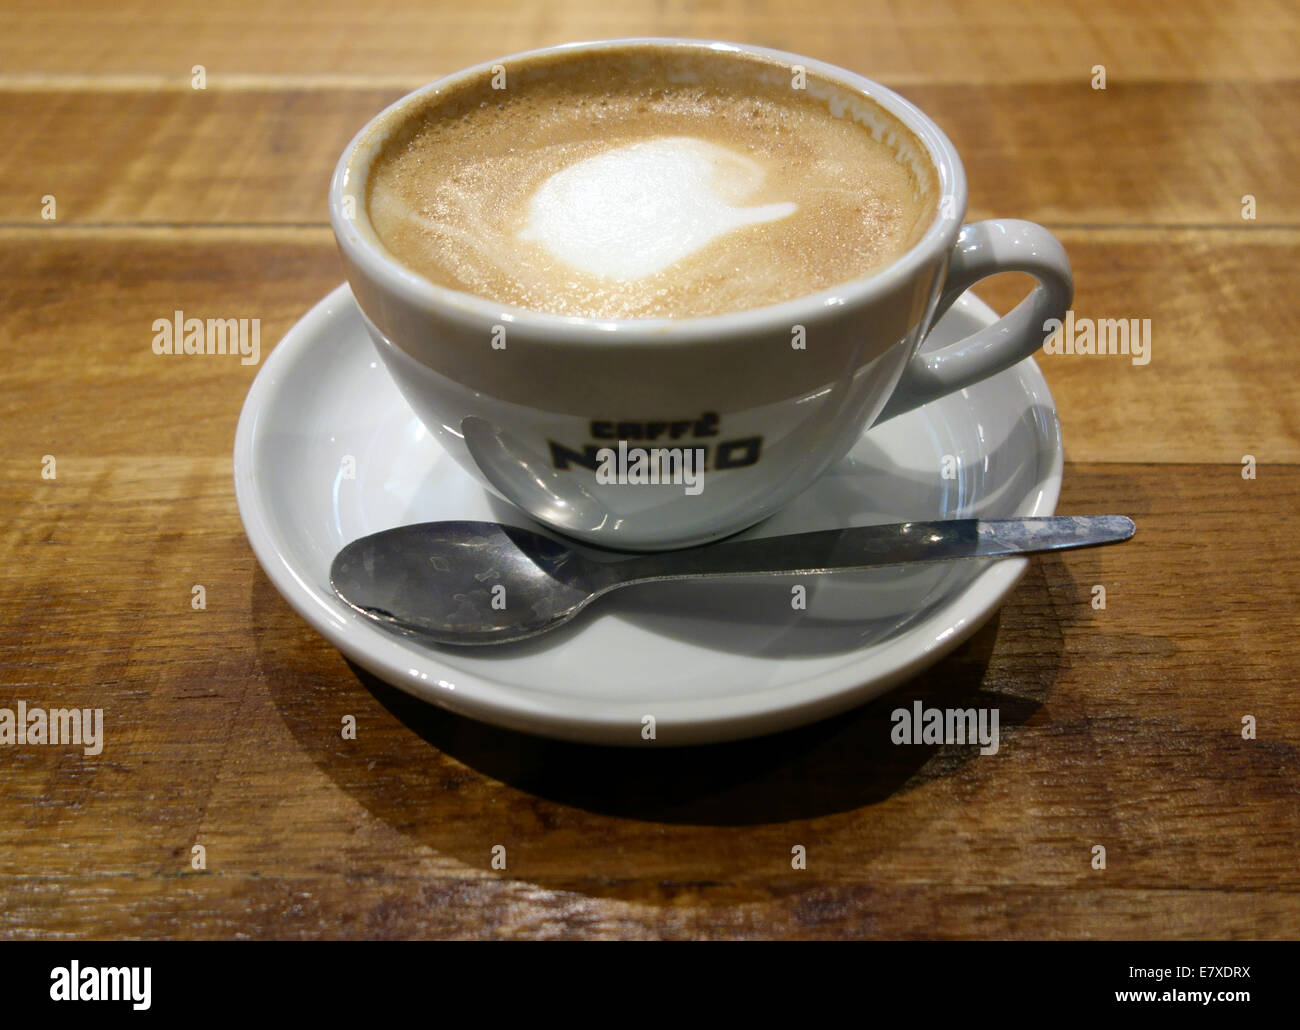 Caffe Latte Cafe Latte In Branch Of Caffe Nero London Stock Photo 73725678